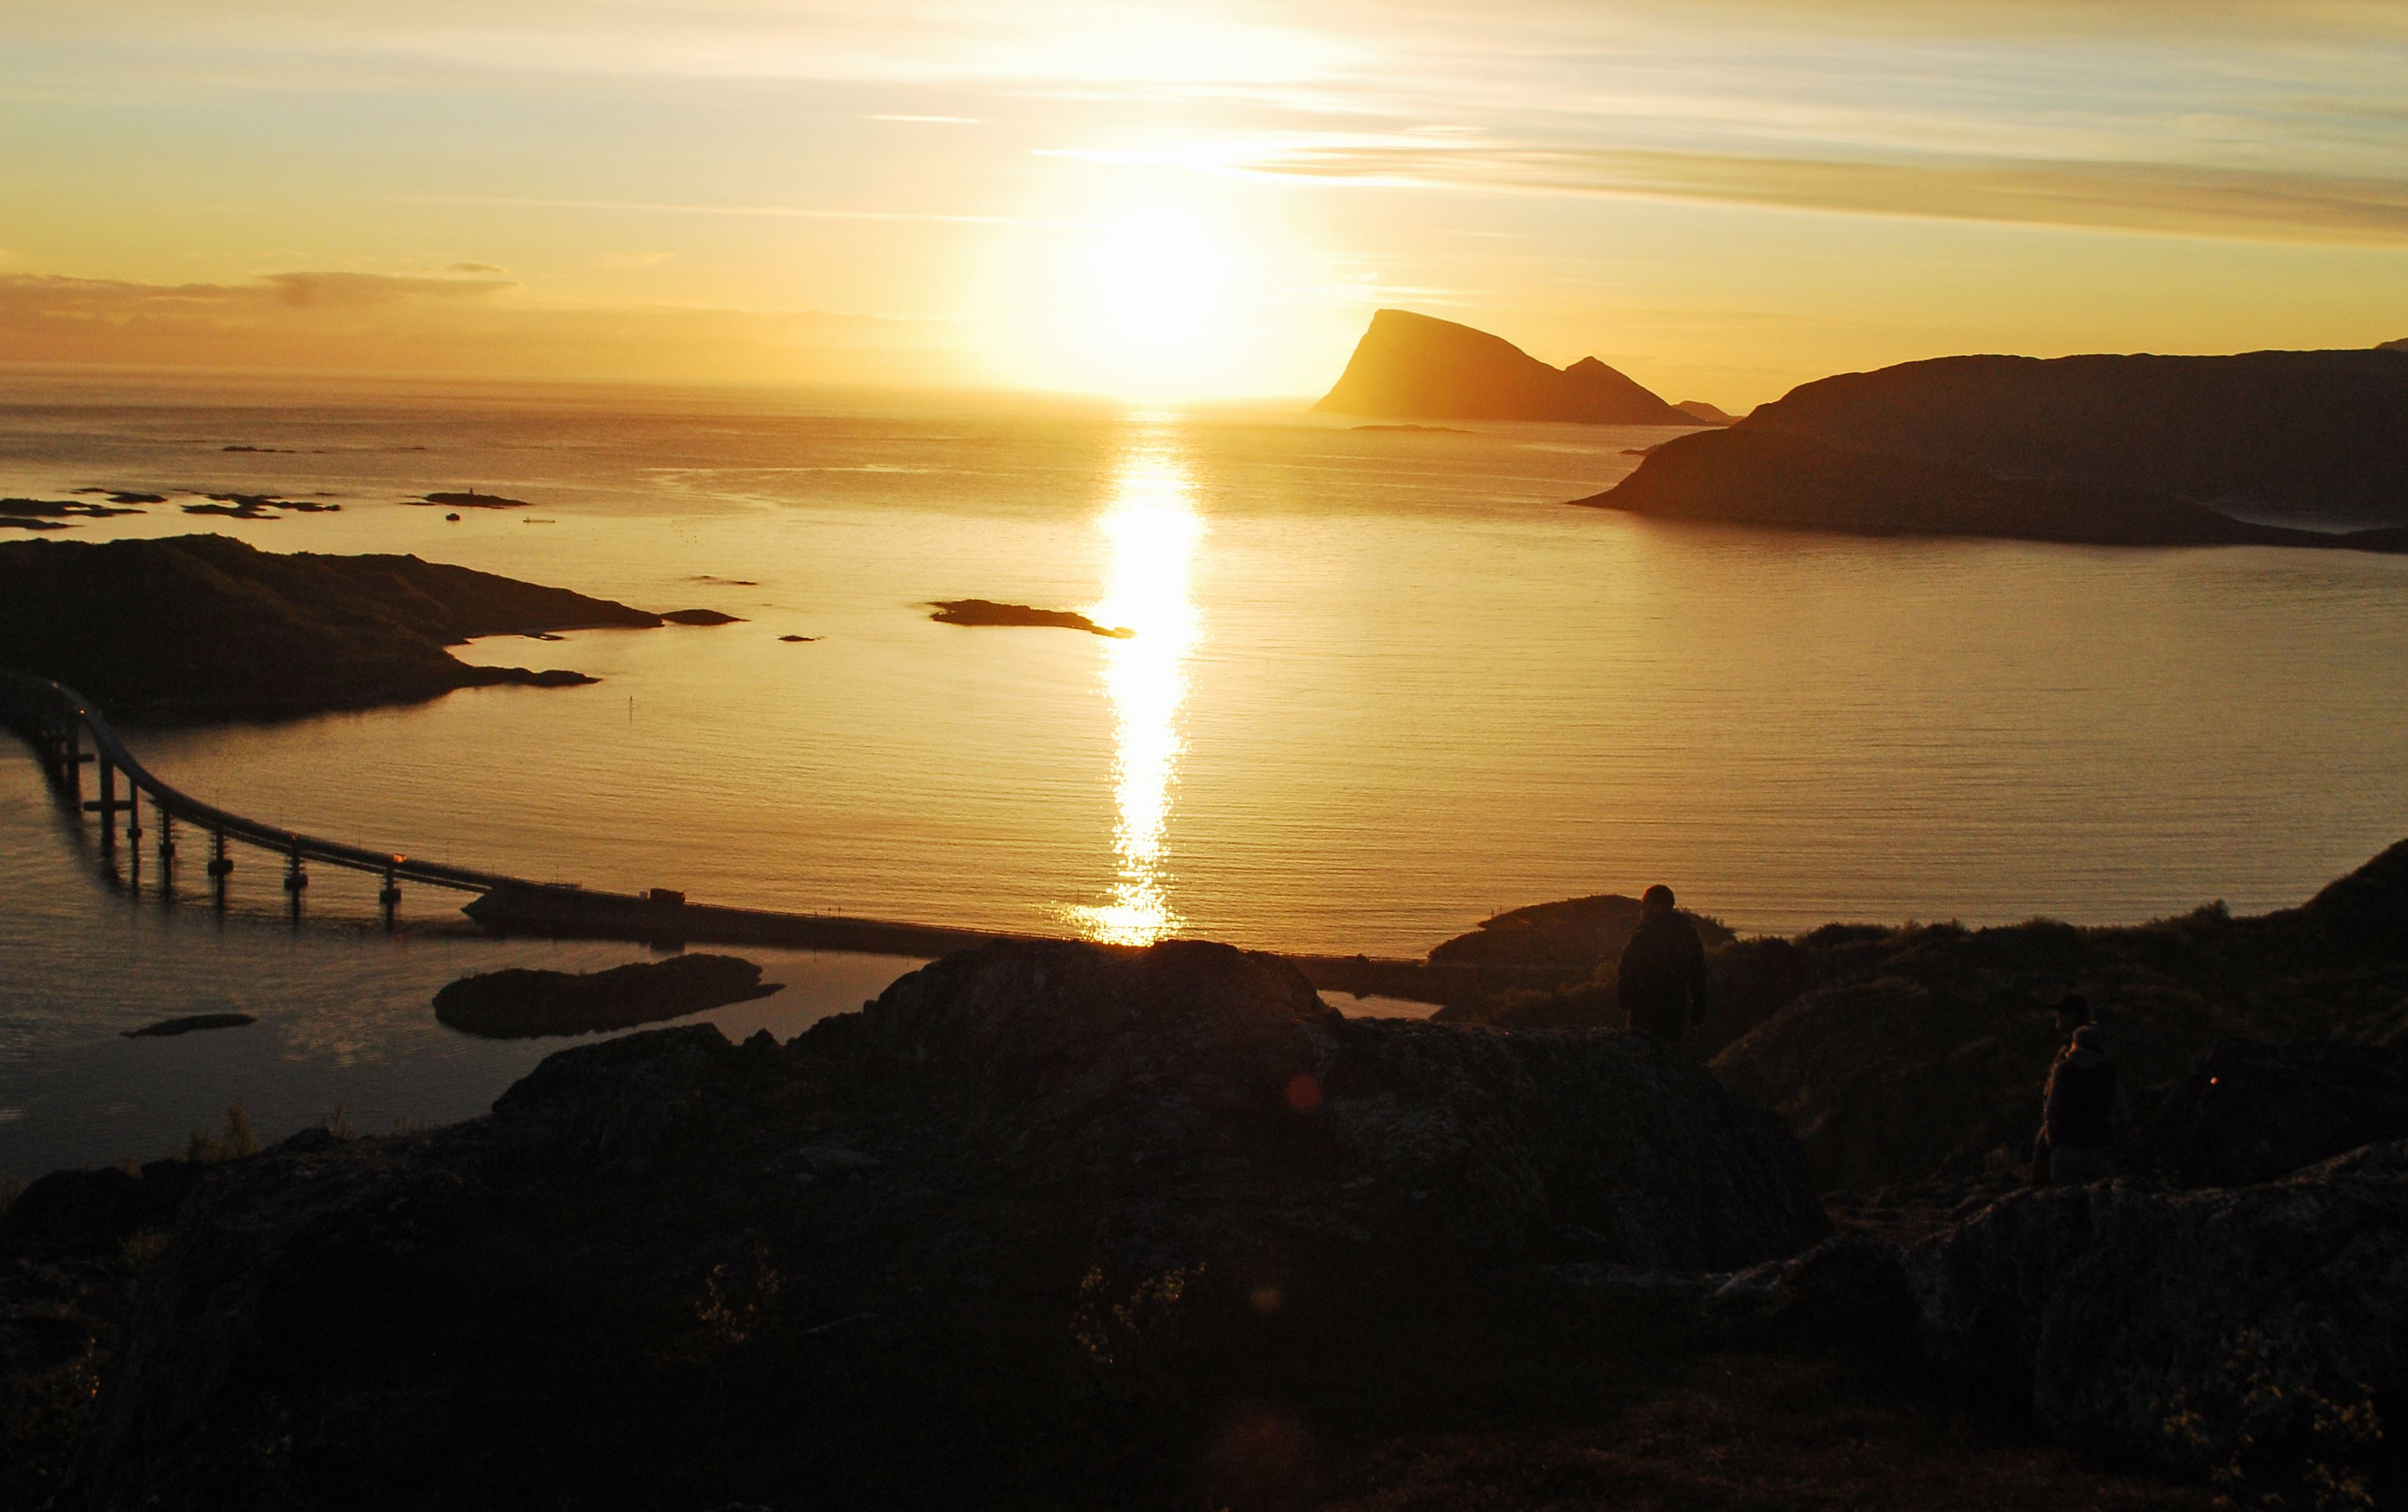 Midnight Sun Experience by RIB - Tromsø Safari